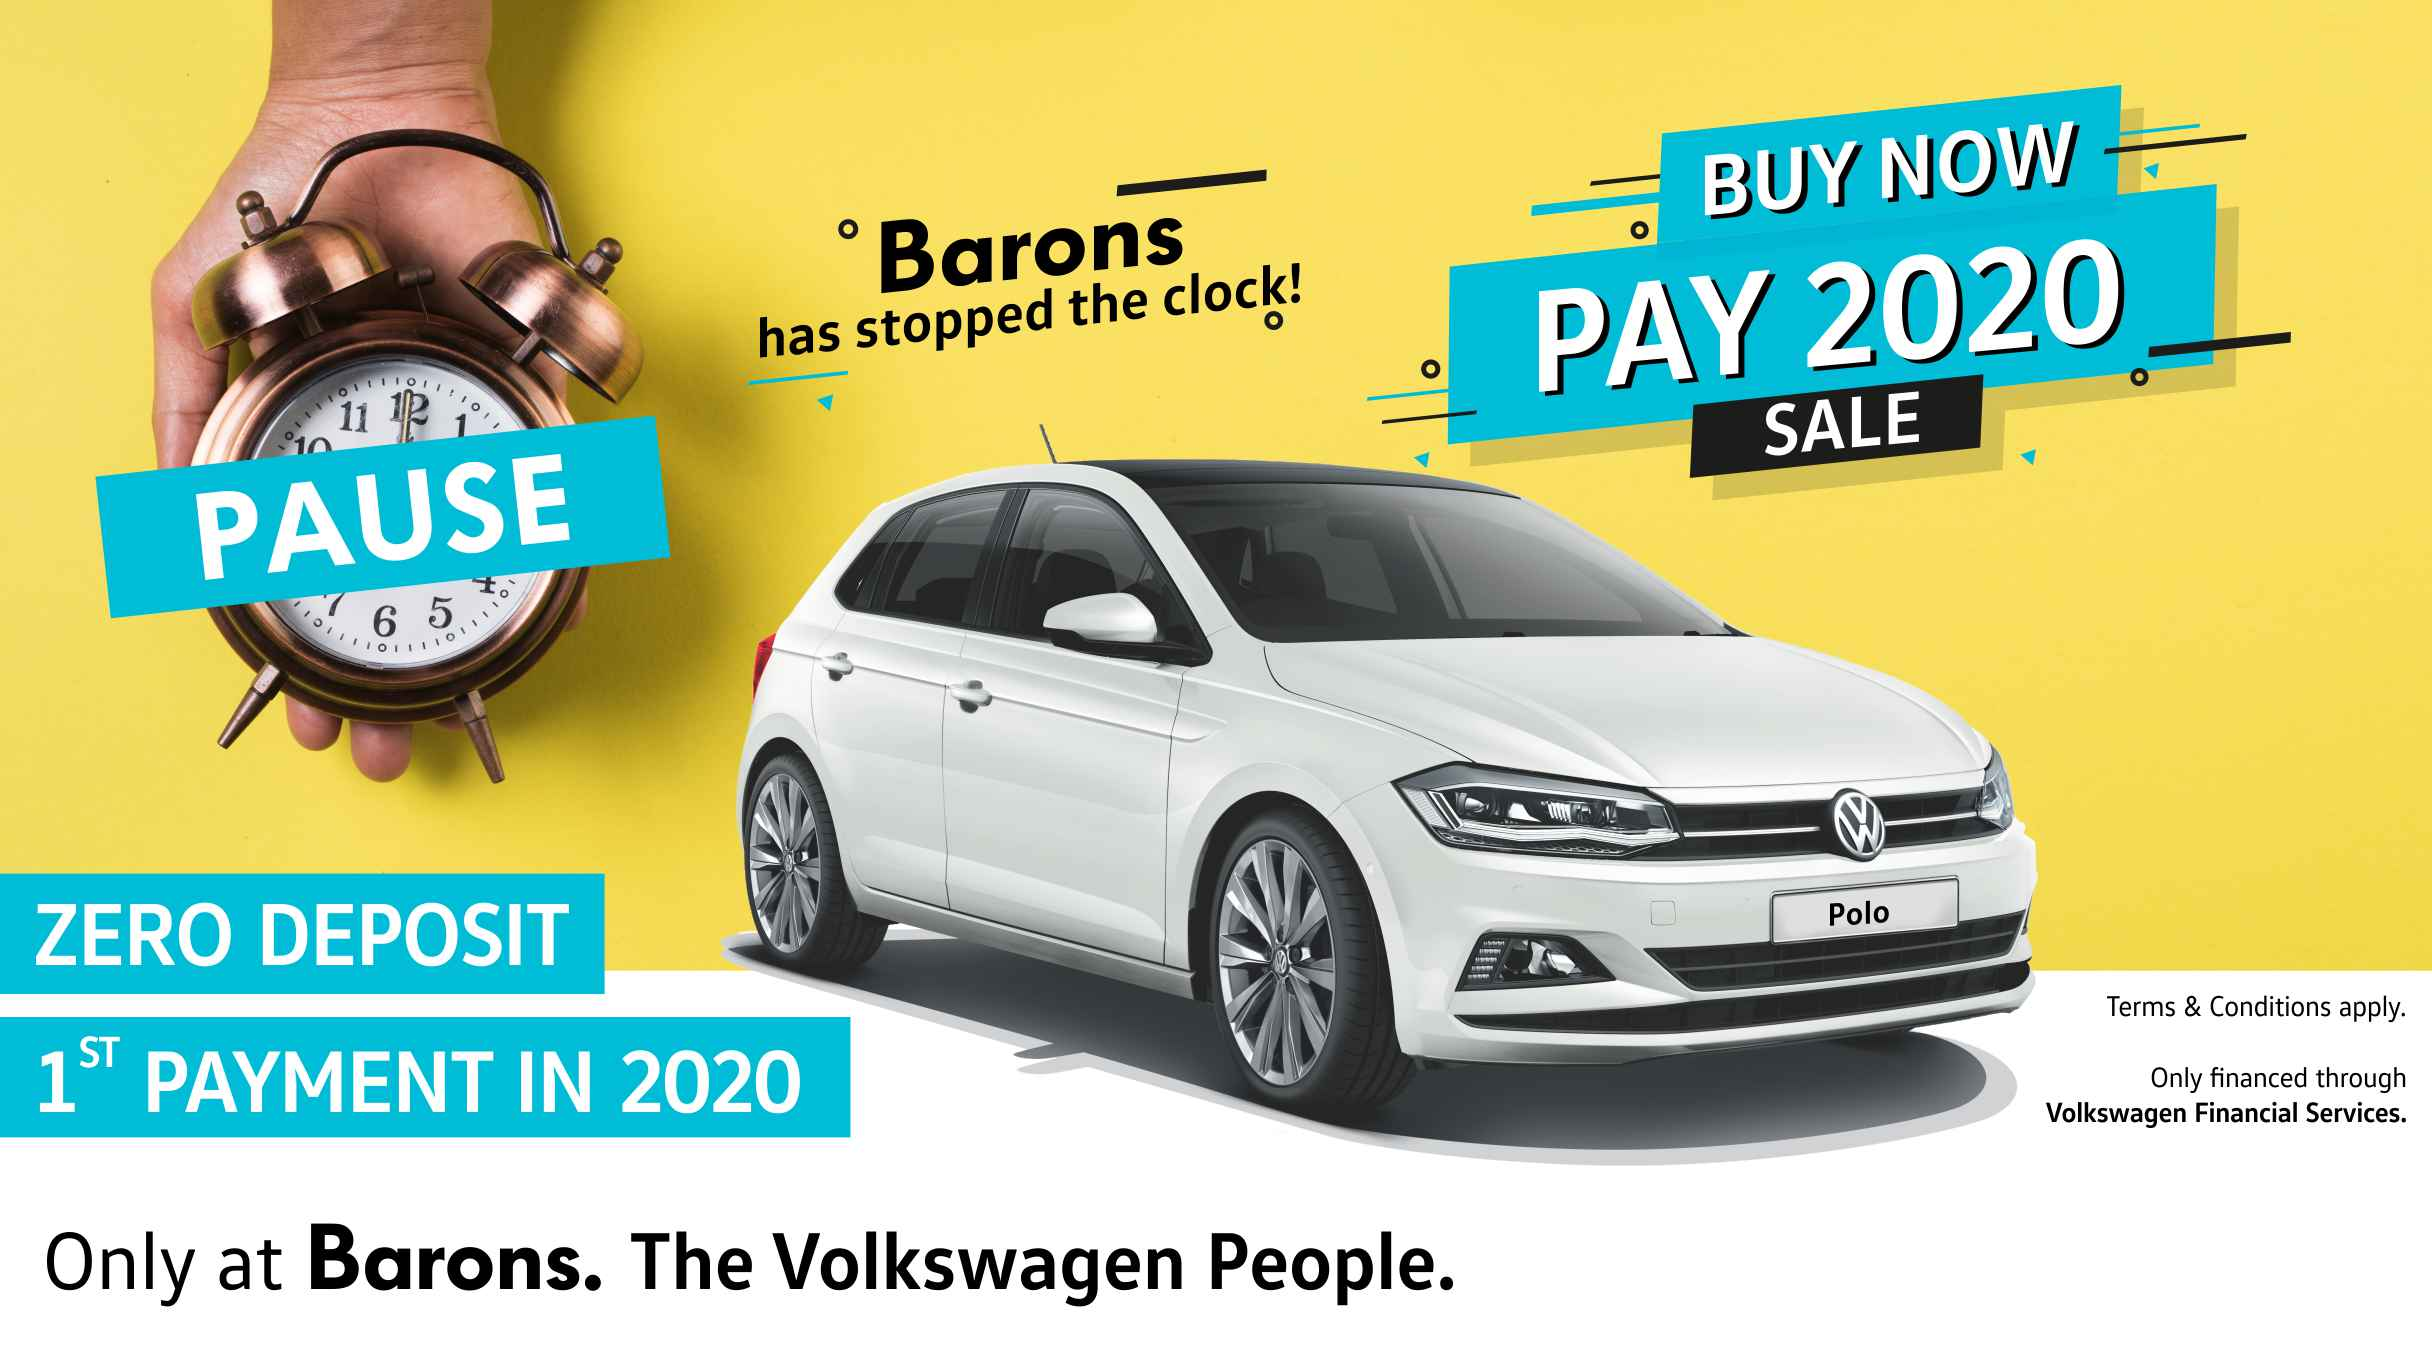 Barons buy now pay 2020 offer